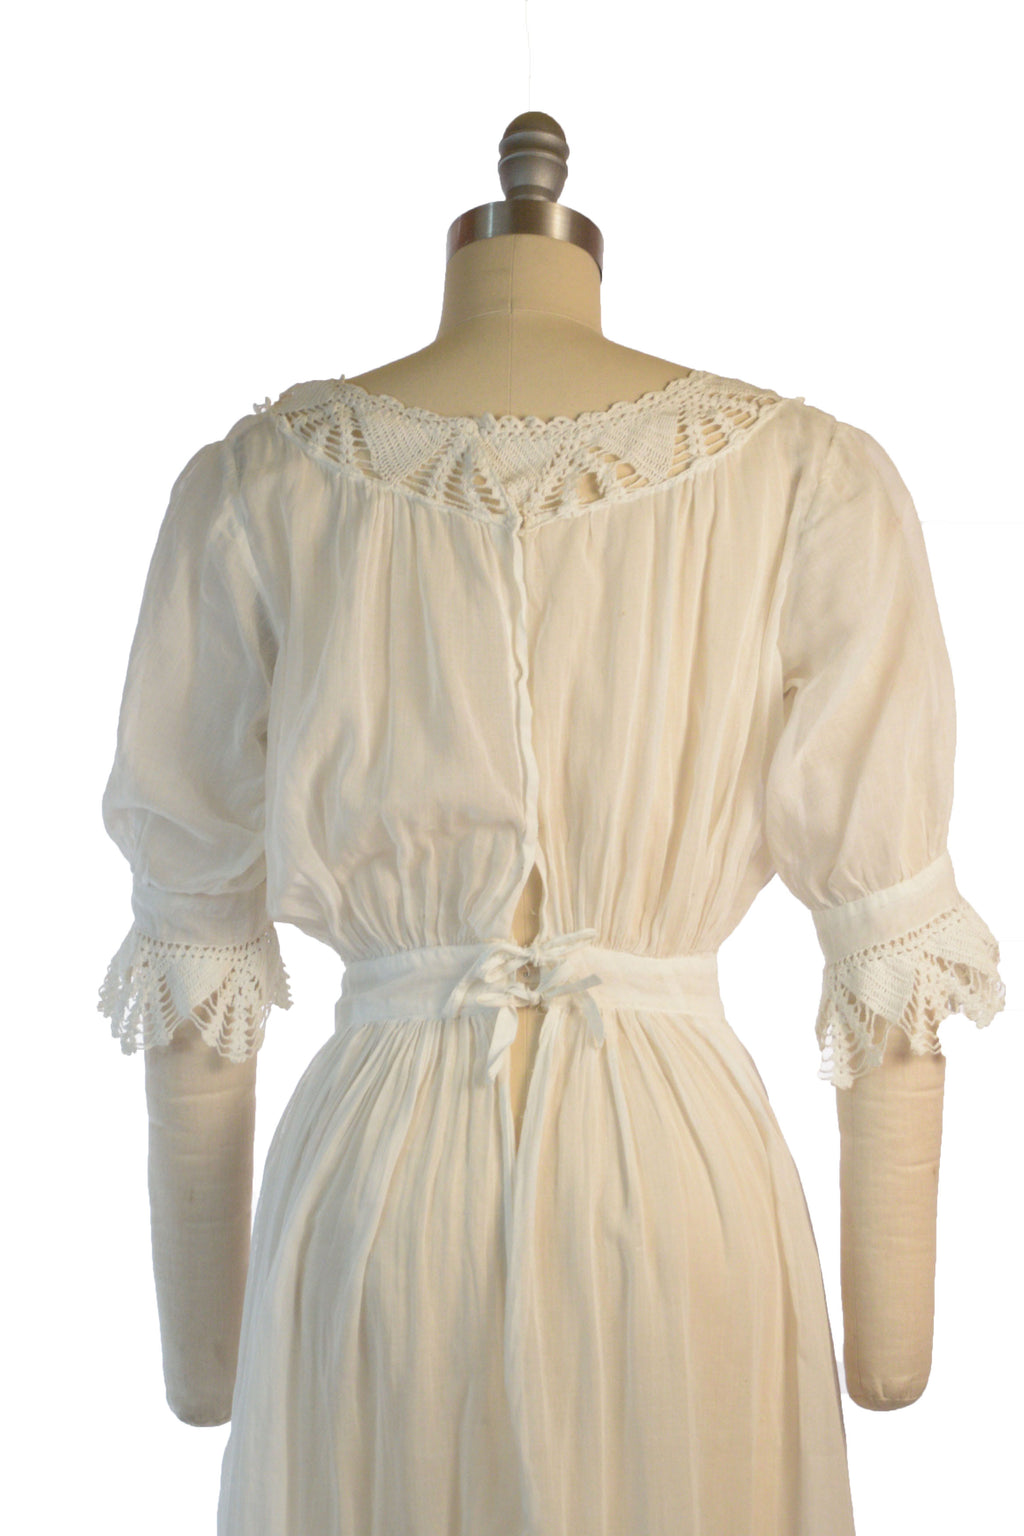 Sweet 1910s Simple Peasant Style Lingerie Dress or Underdress with Crocheted Collar and Cuffs